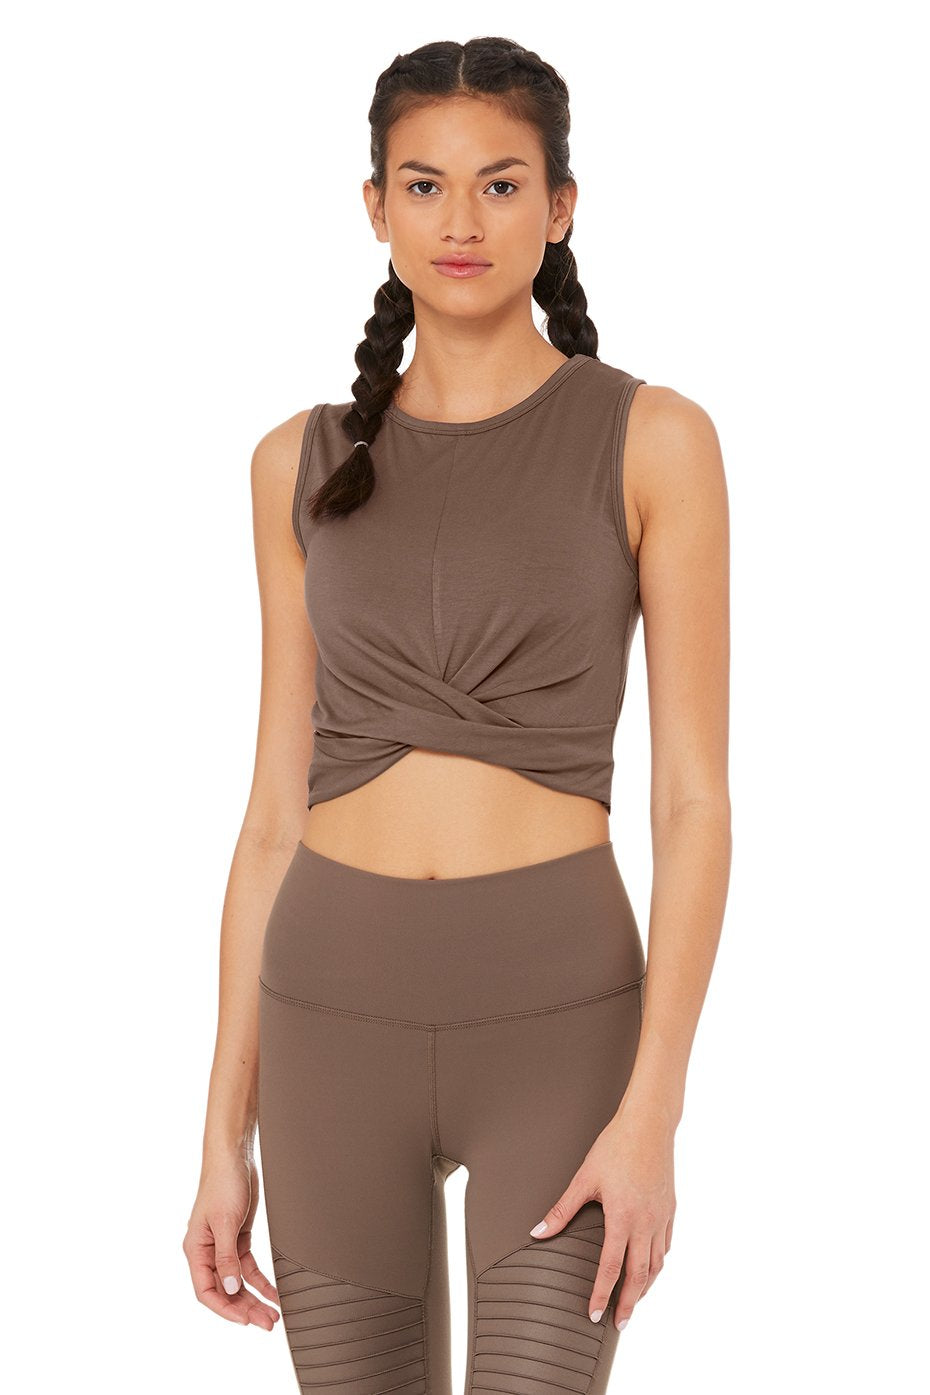 Alo Yoga SMALL Cover Tank - Coco